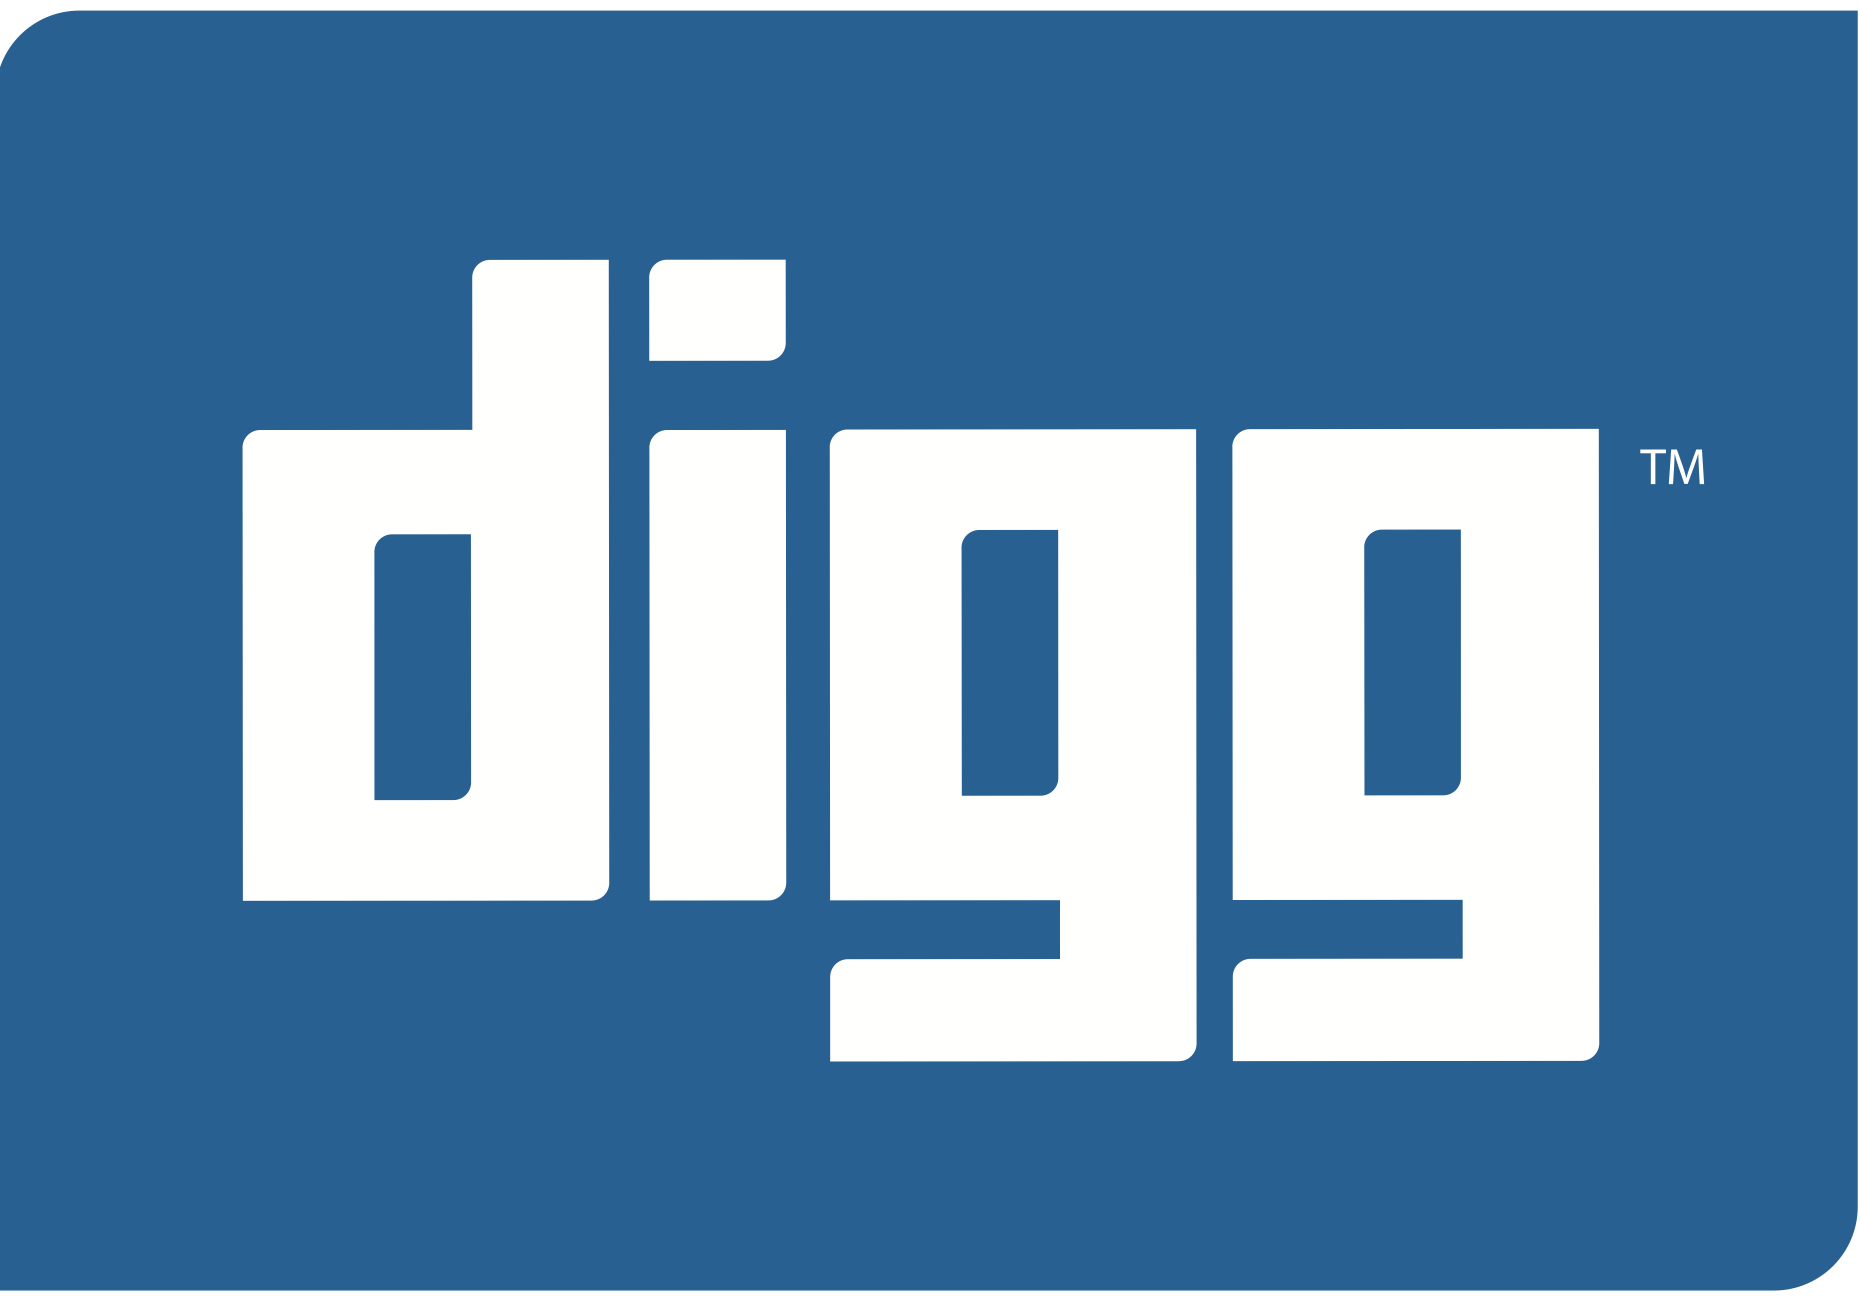 Panic also spread last week when prominent social site Digg was delisted by Google